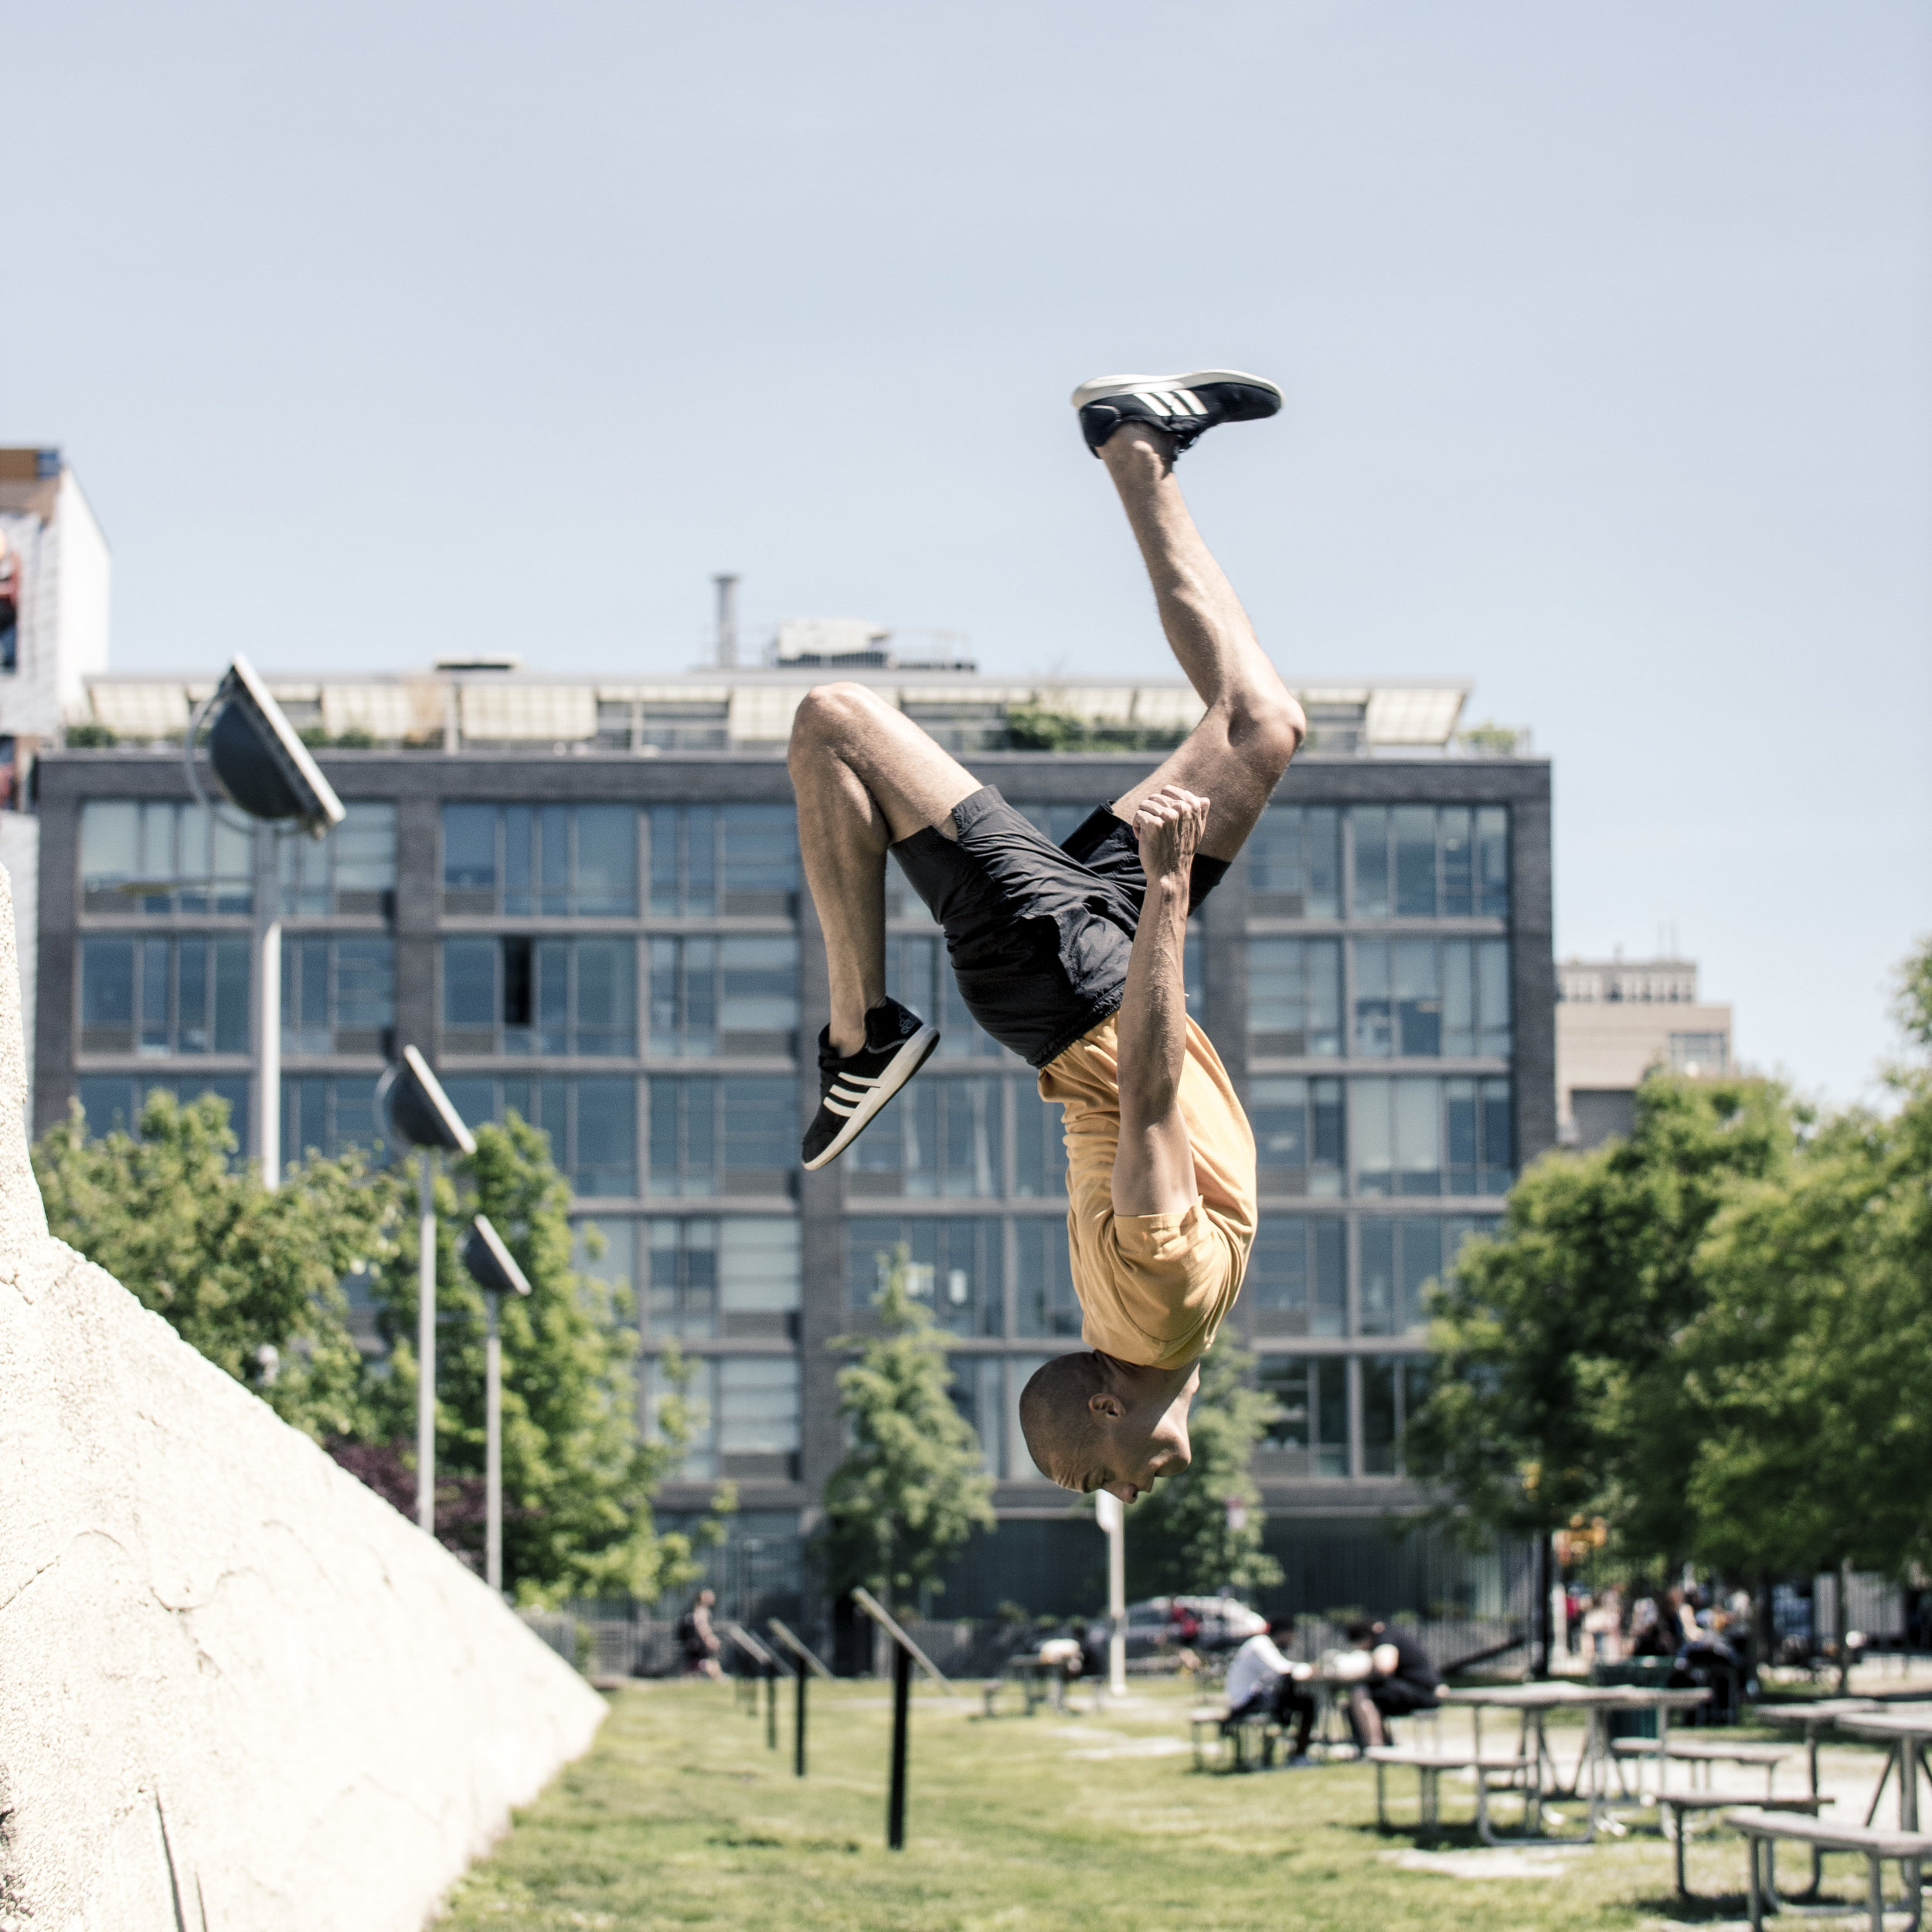 Miguel-Southee-Steve-Zavitz-Parkour-NYC-Freerunning-Spec-Flash-Kick-Backflip